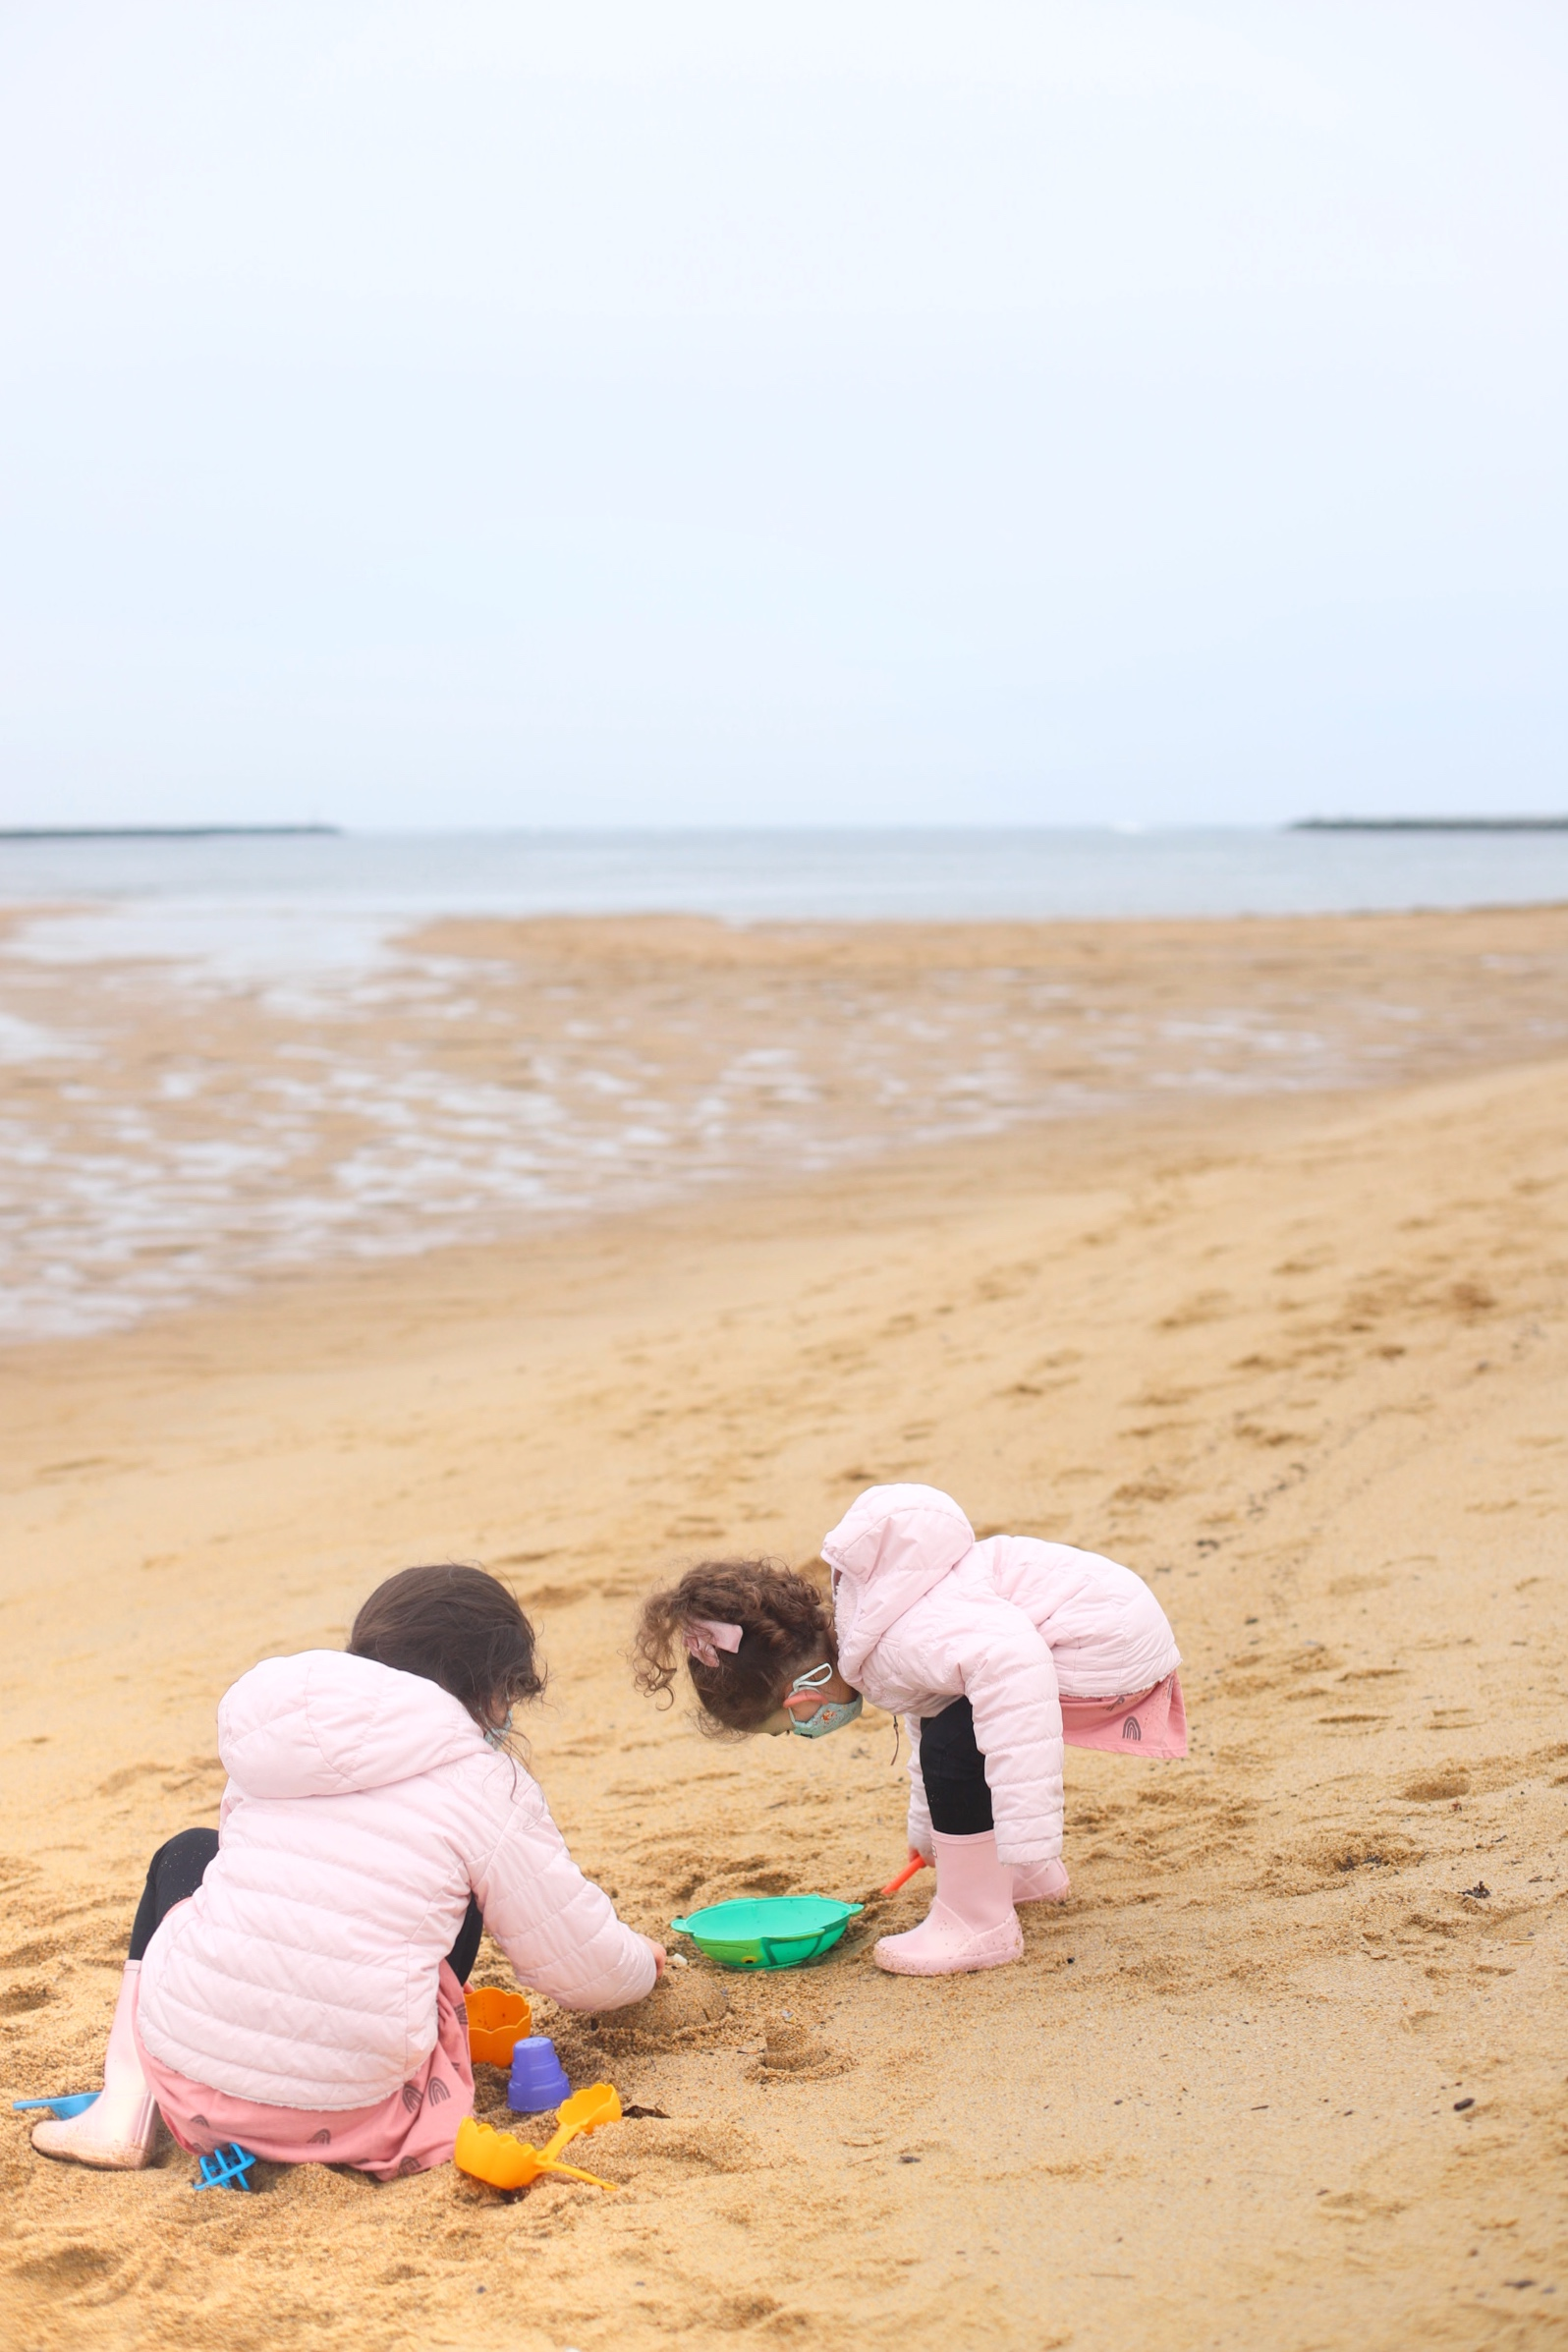 Weekend Recap Including Our Beach Day Photo Diary of Plum Island in NewburyPort MA - A Coastal Town Just Outside of Boston | New England Travel Day Trip | @glitterinclexi | GLITTERINC.COM